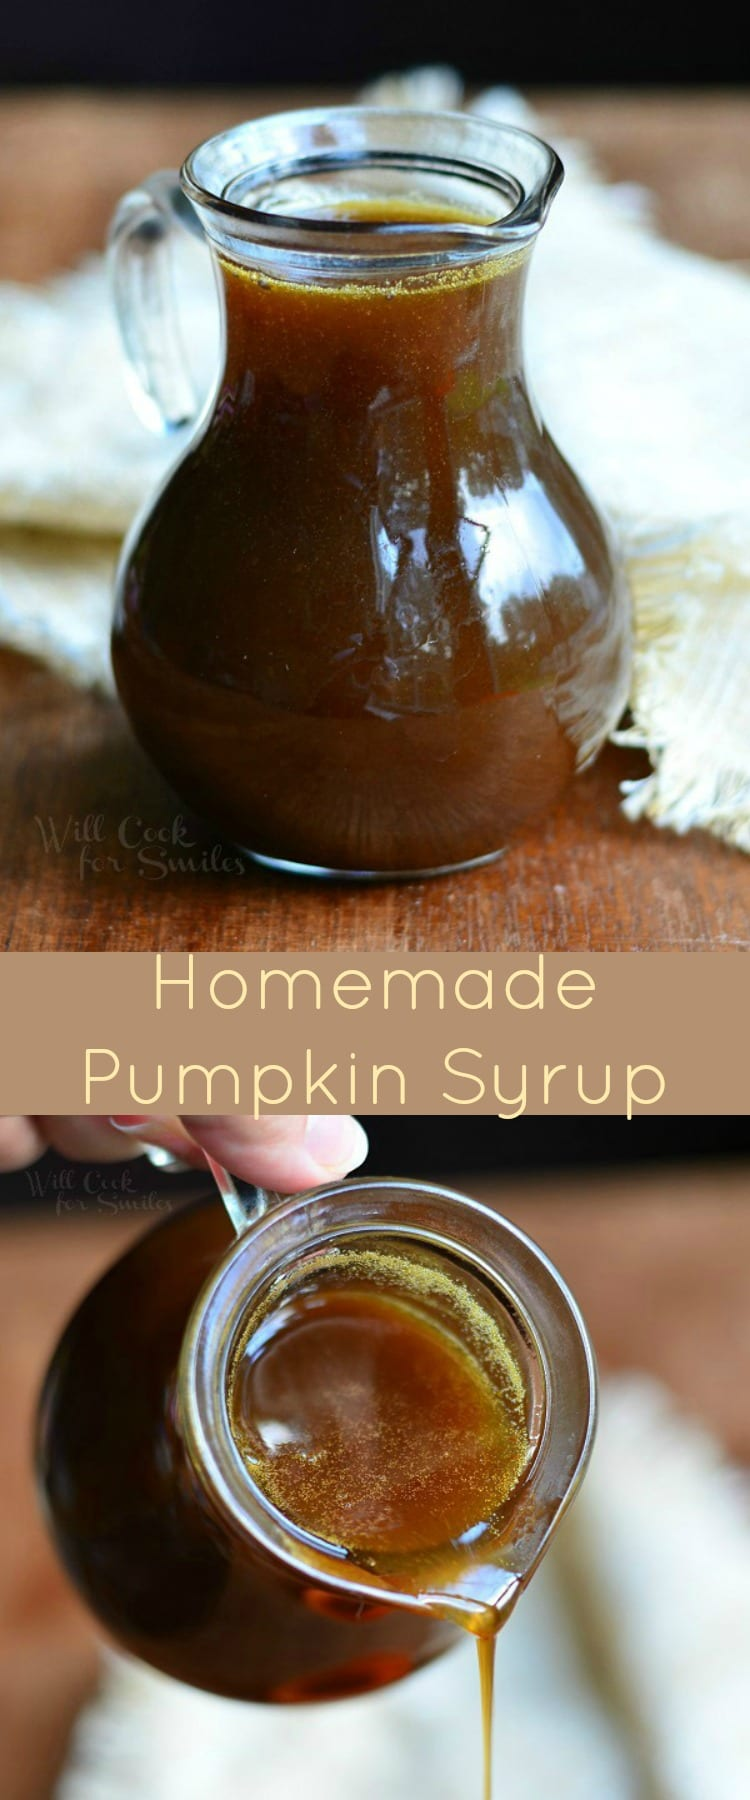 Homemade Pumpkin Syrup Recipe. This homemade topping is easy to make and it goes perfectly with pancakes, waffles, ice cream, and many other treats. #pumpkin #topping #homemade #Pancakes #waffles #syrup